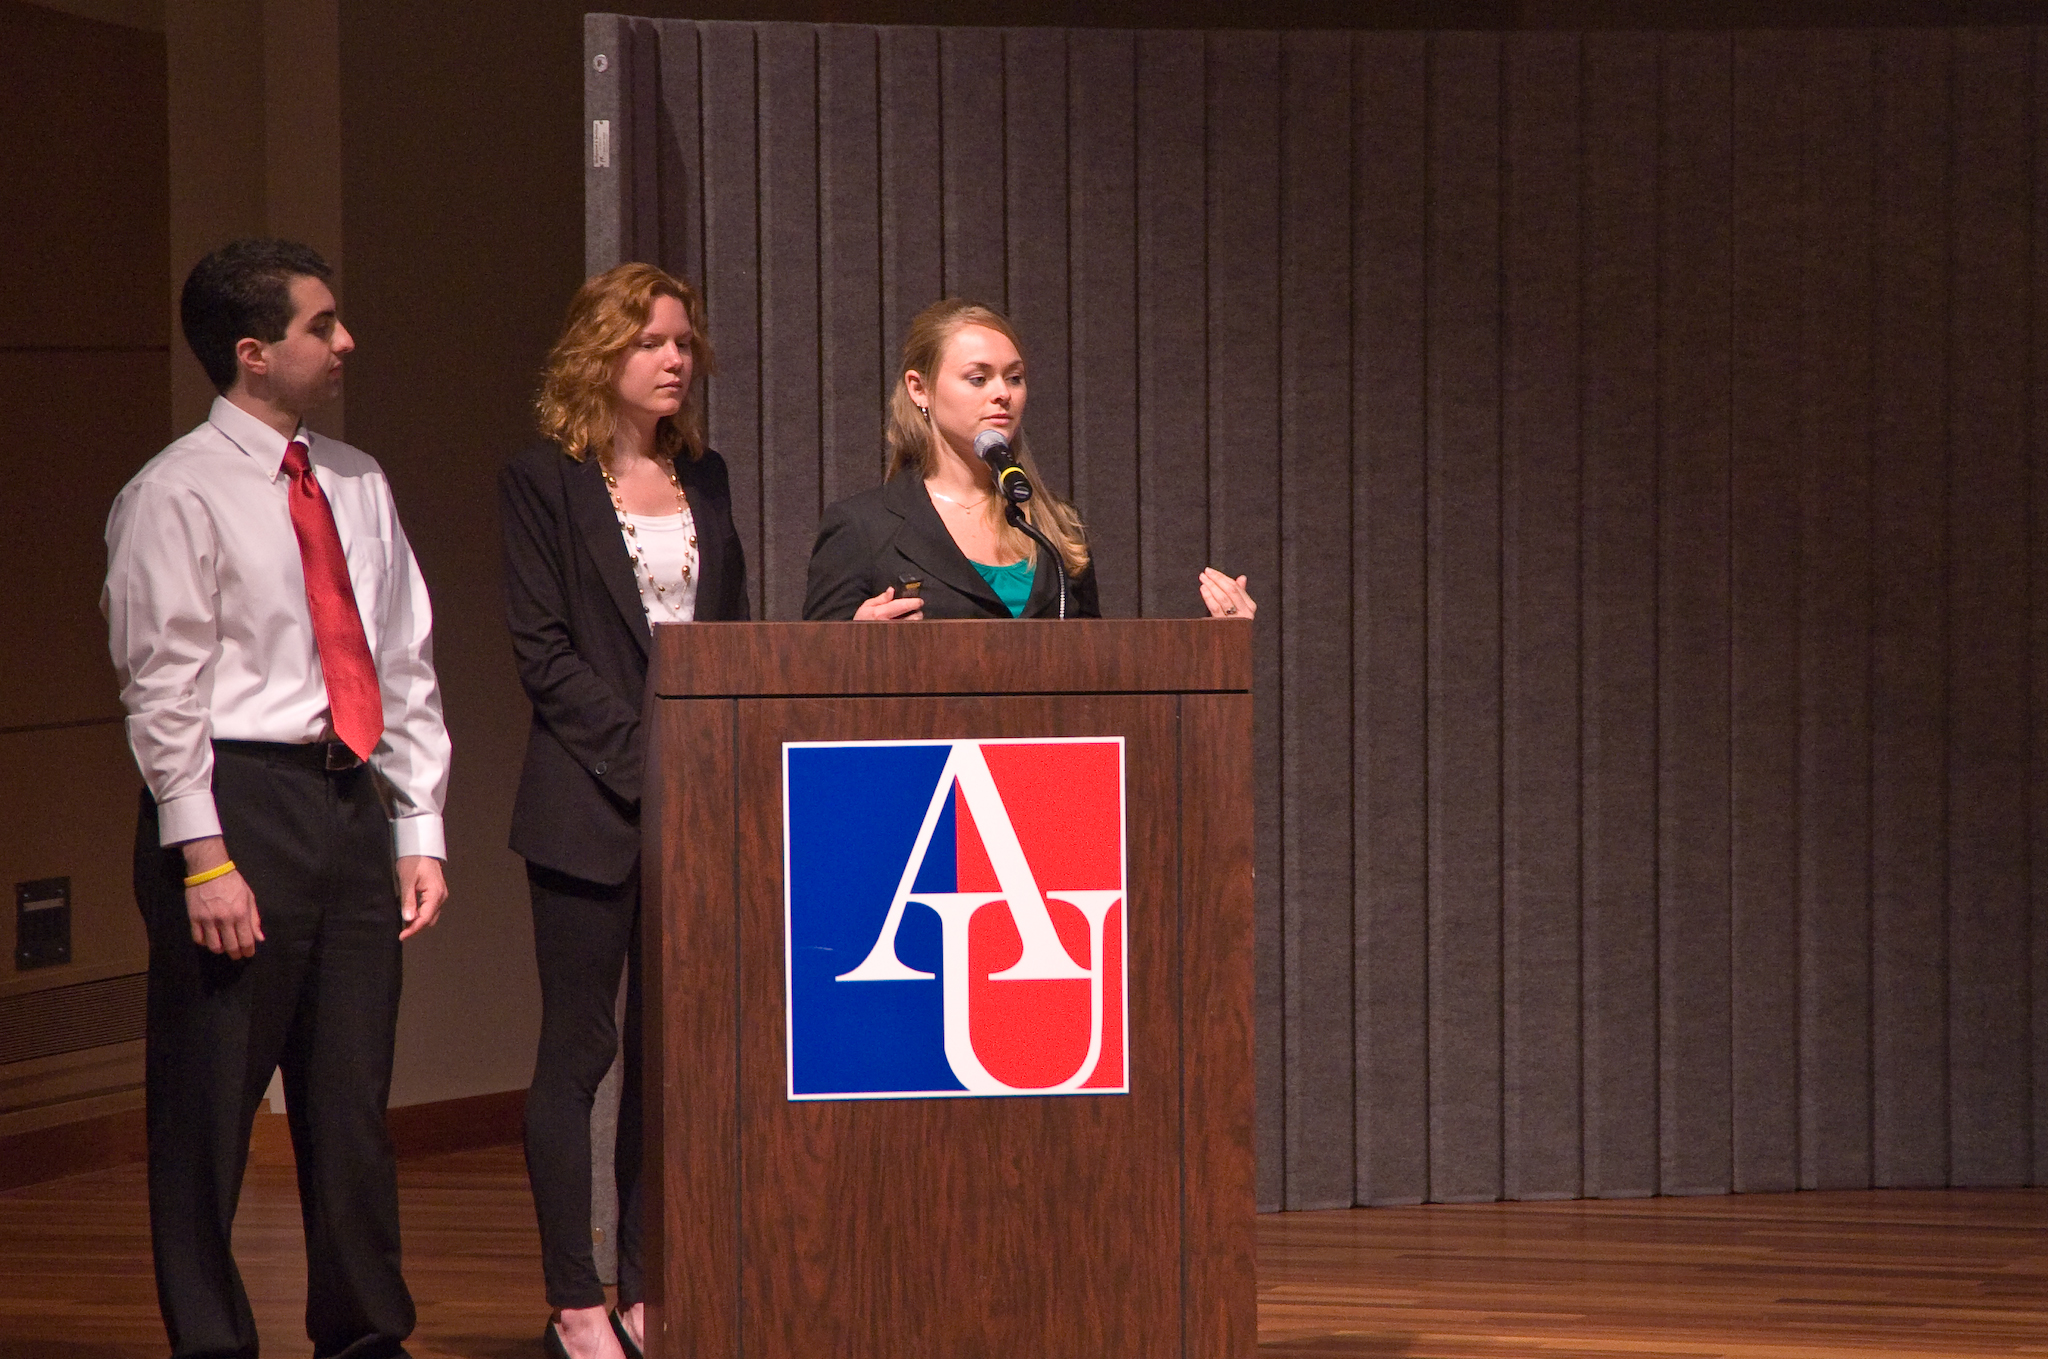 three students standing at podium with AU logo on the front.